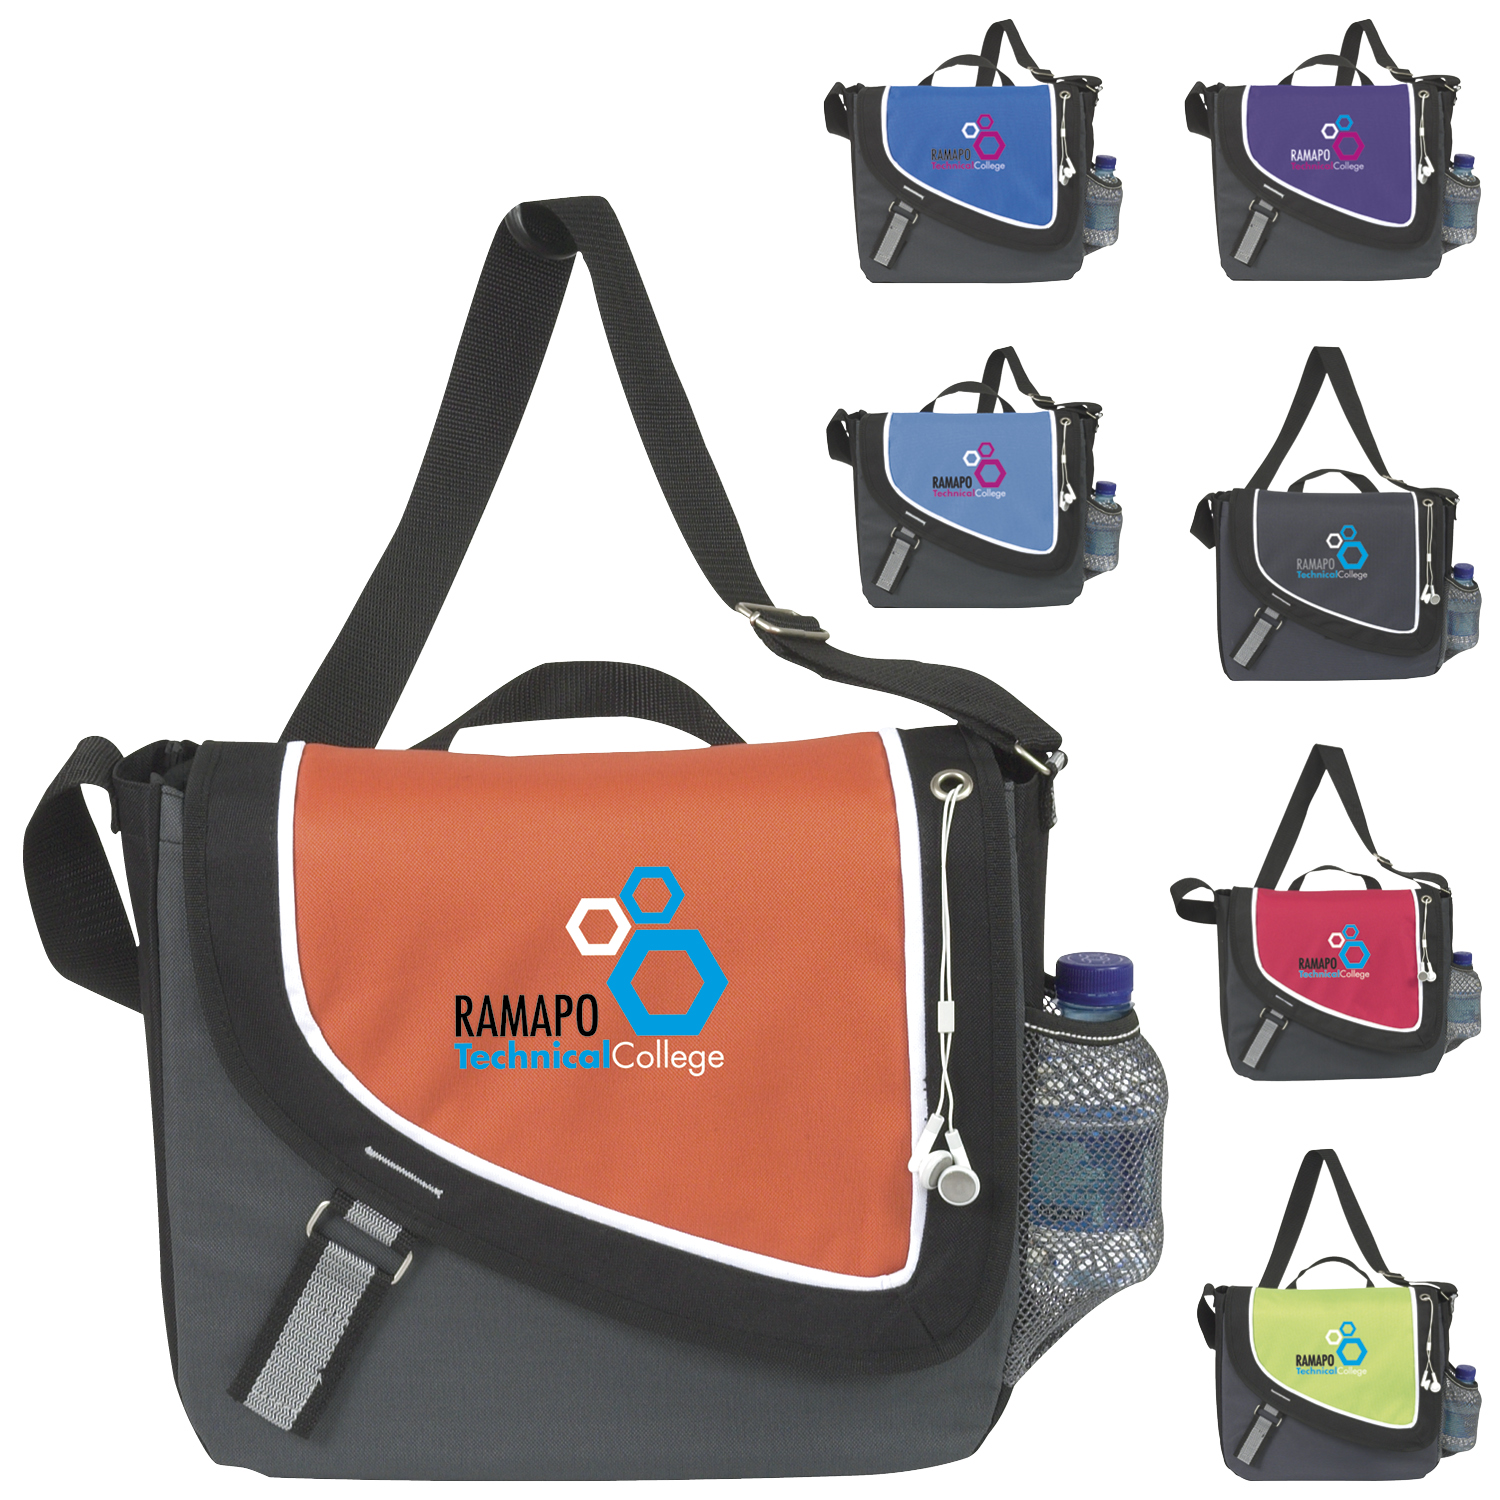 Atchison A Step Ahead Messenger Bag - 1 Colour Imprint